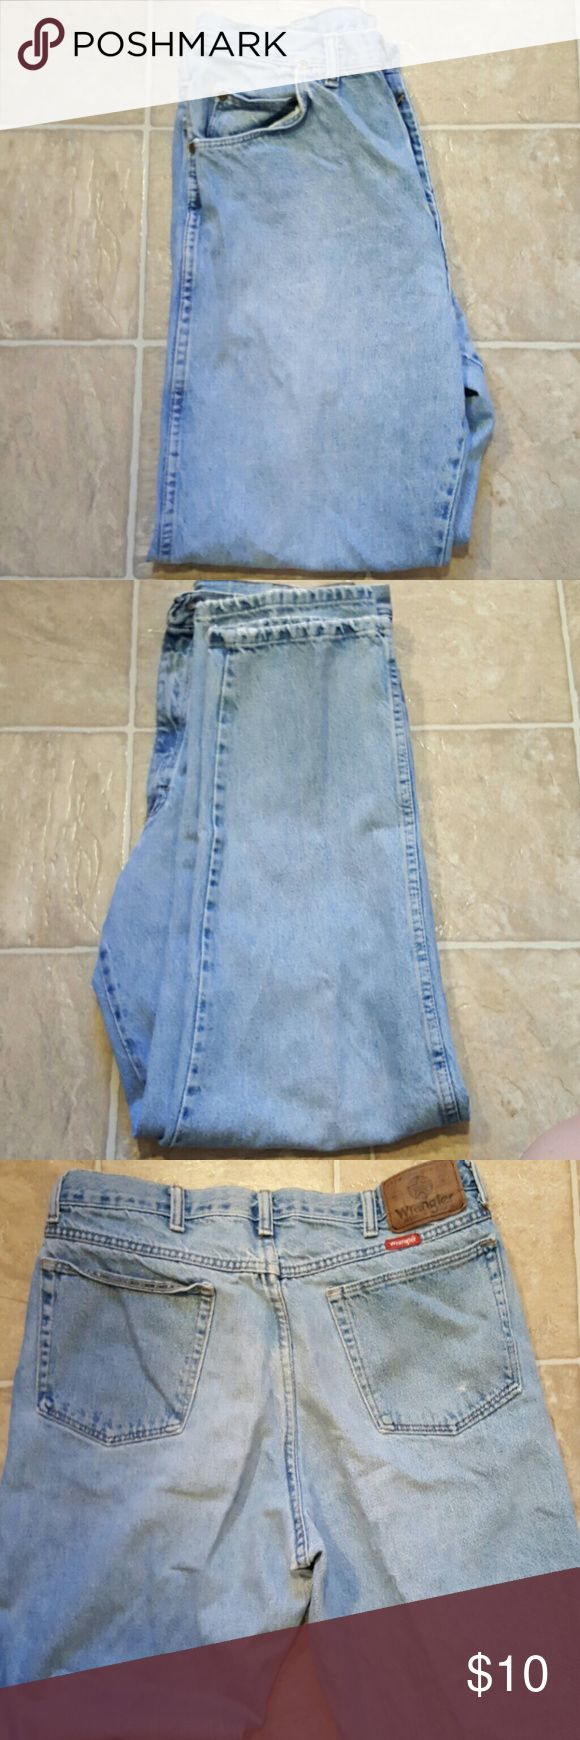 Wrangler's authentic jeans for men Used wrangler jeans Wrangler Jeans